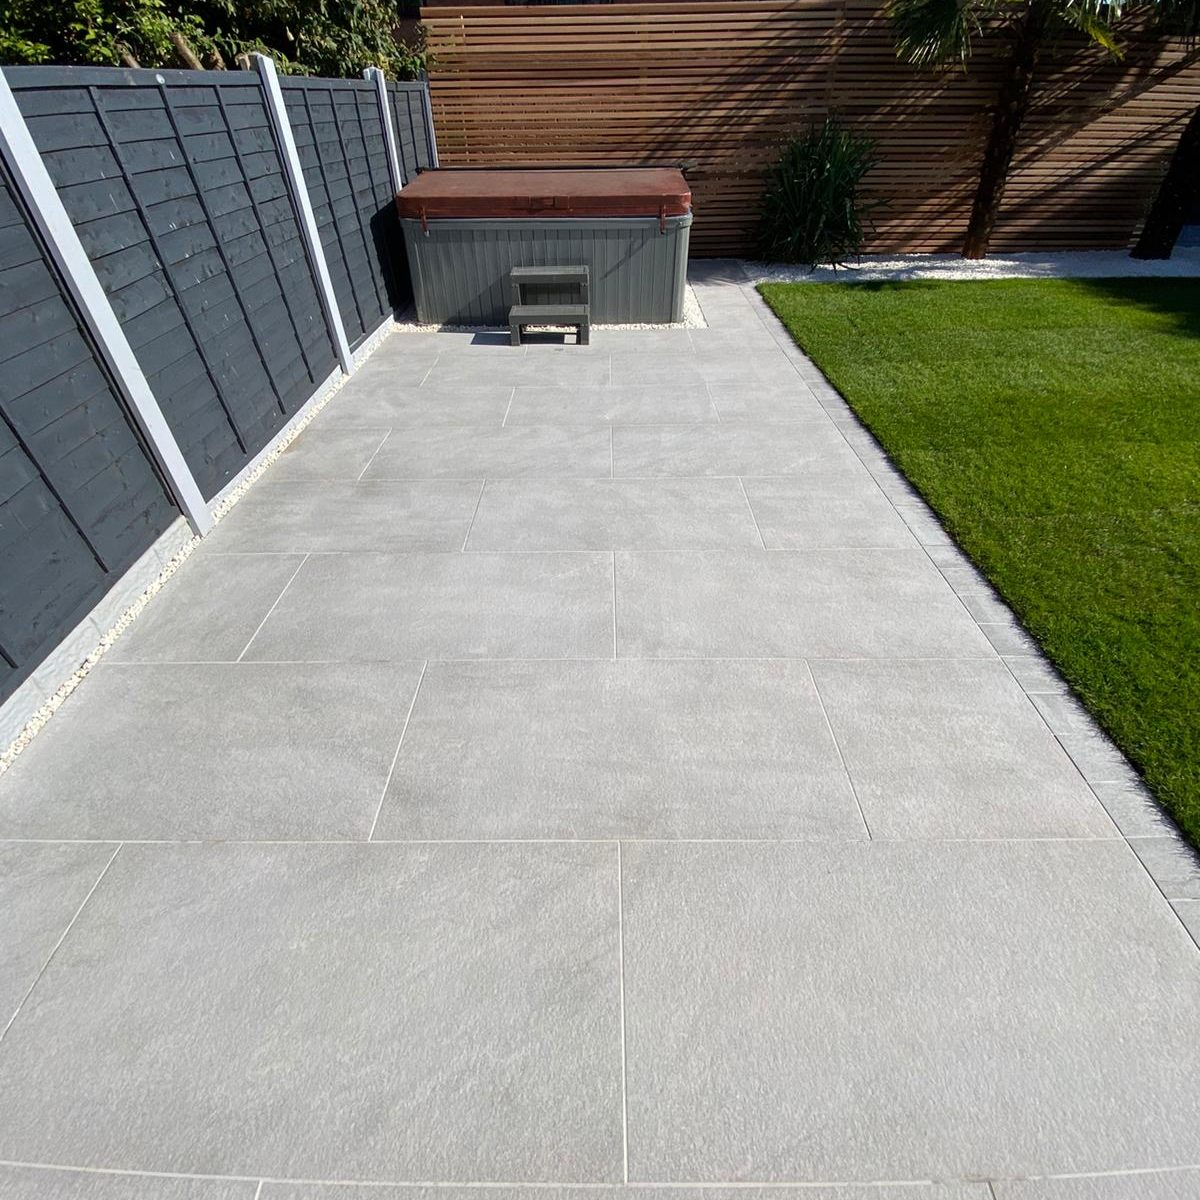 PRESTIGE (1200X600) Outdoor Porcelain Paving - 3 Colours - XL Tile - IN  STOCK 48Hrs Delivery - Cheshire Sandstone